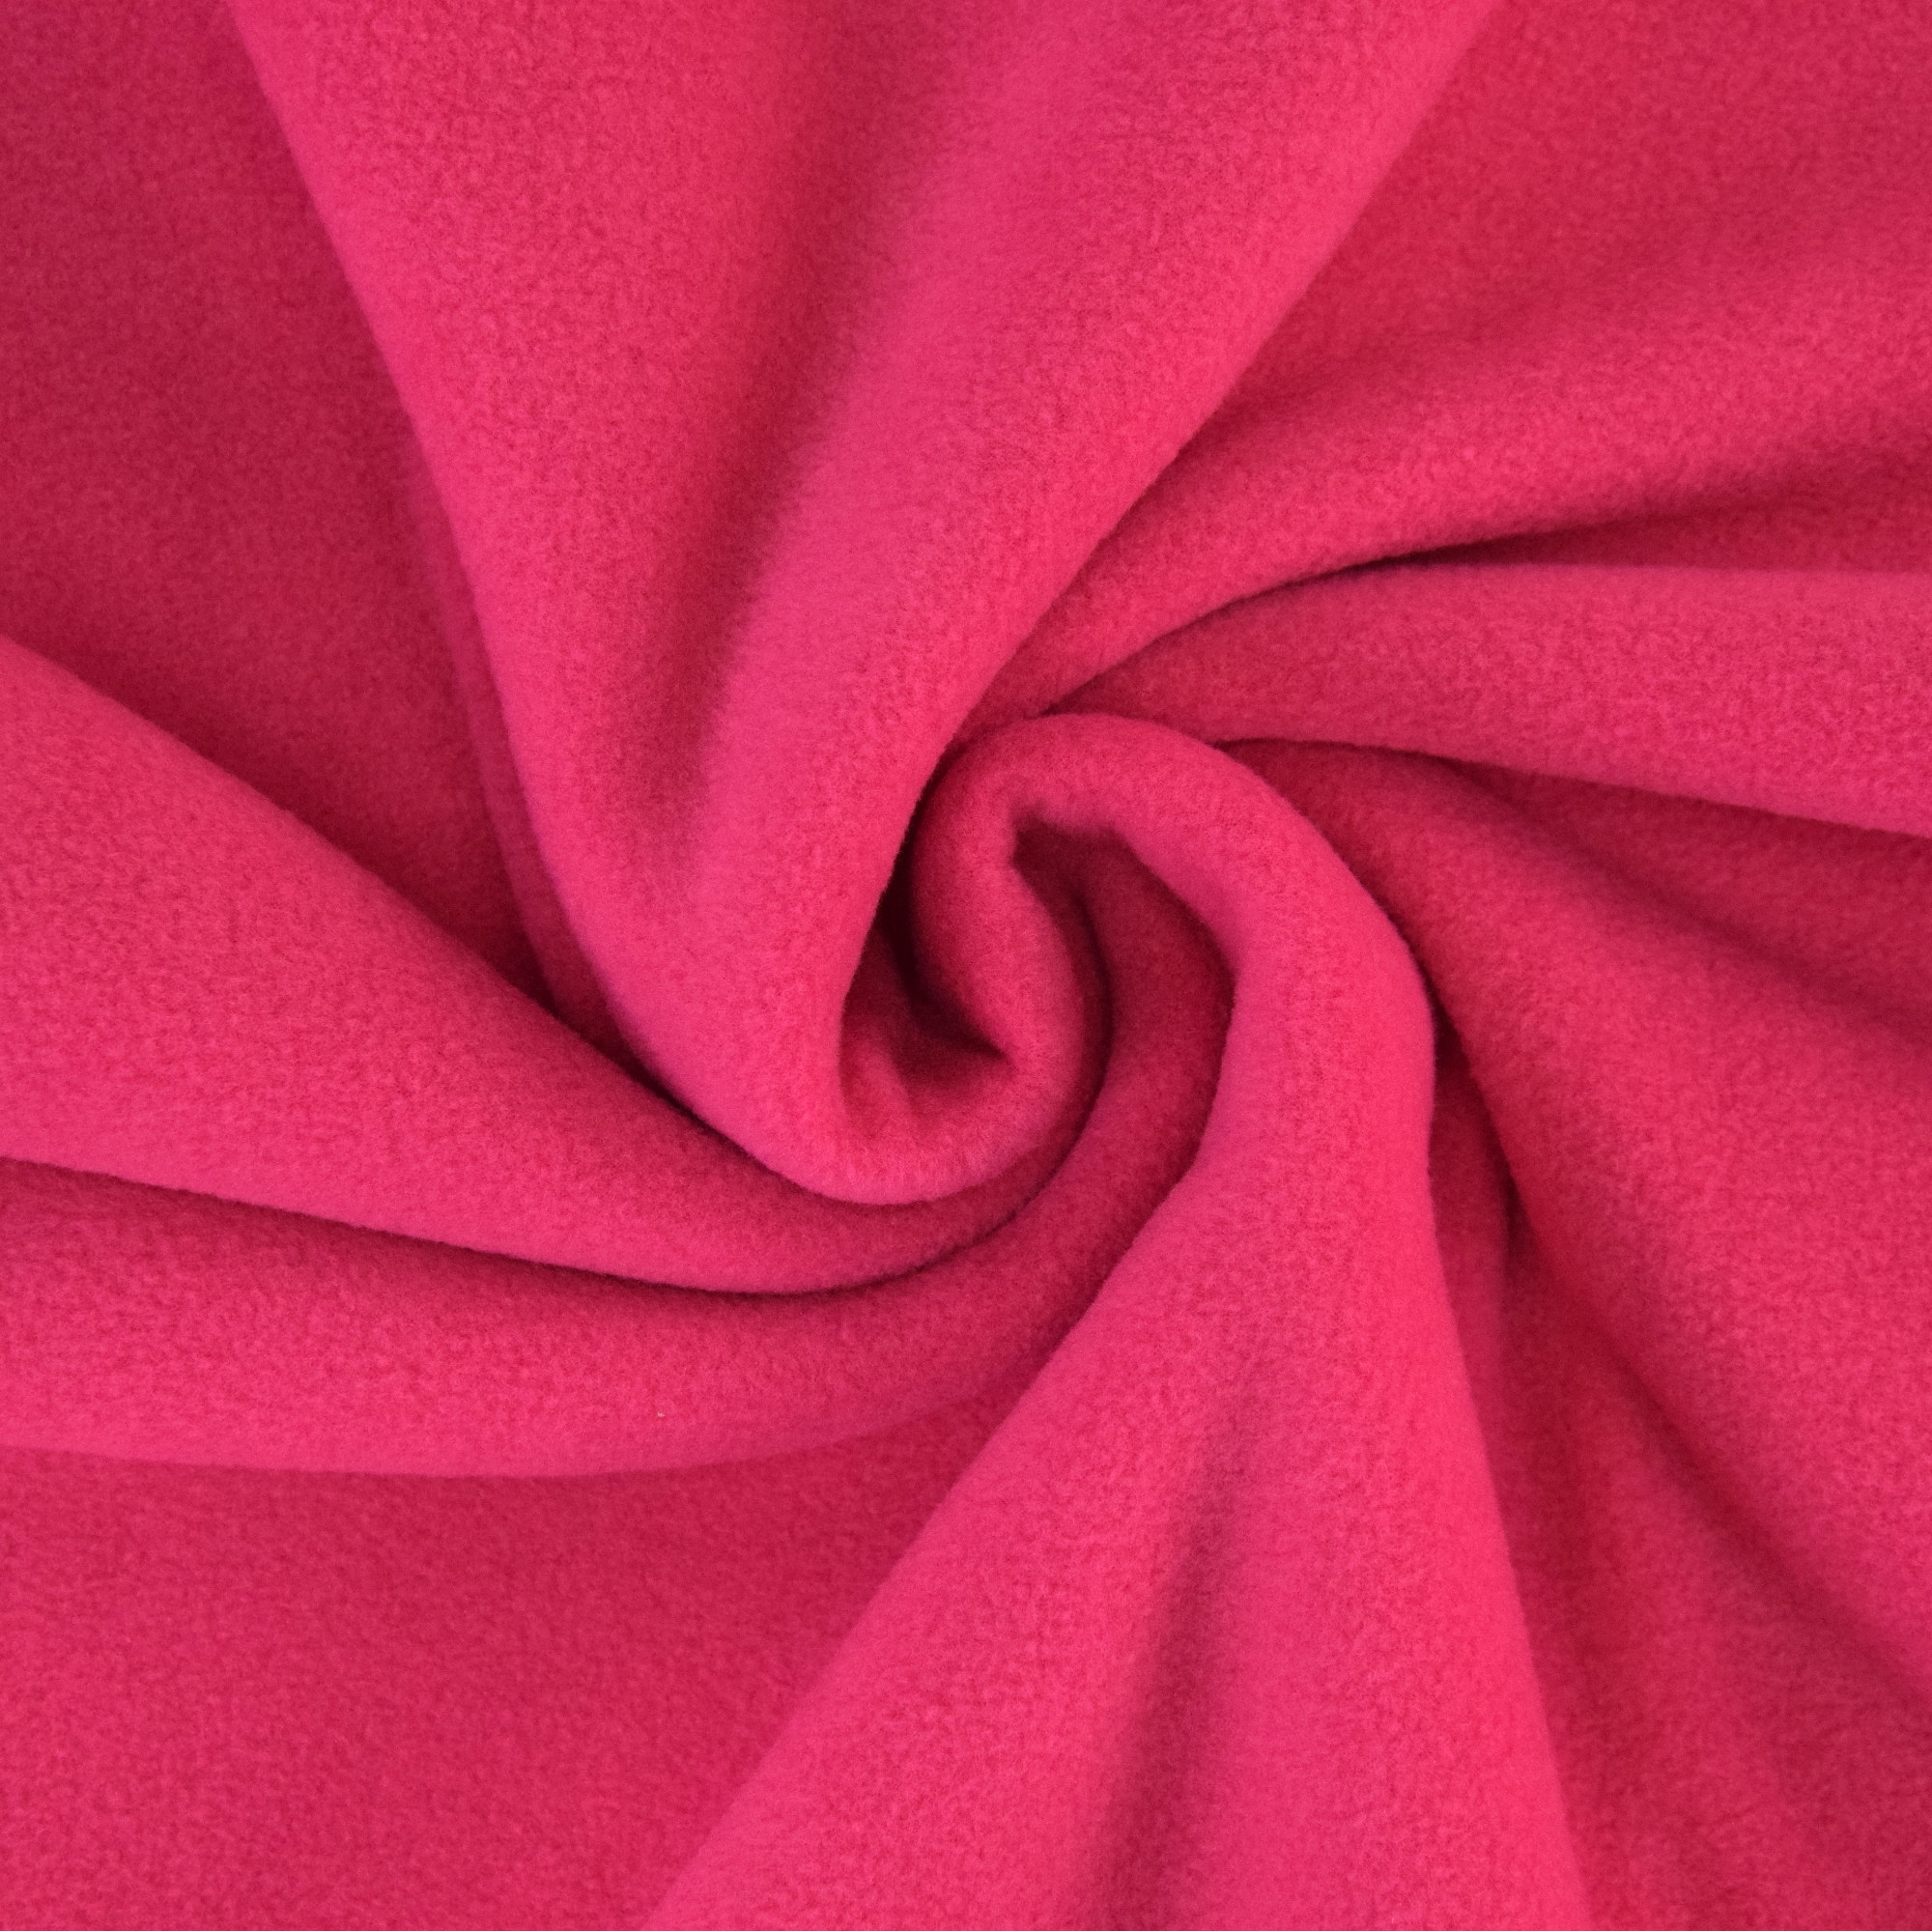 Fleece Antipilling pink 1